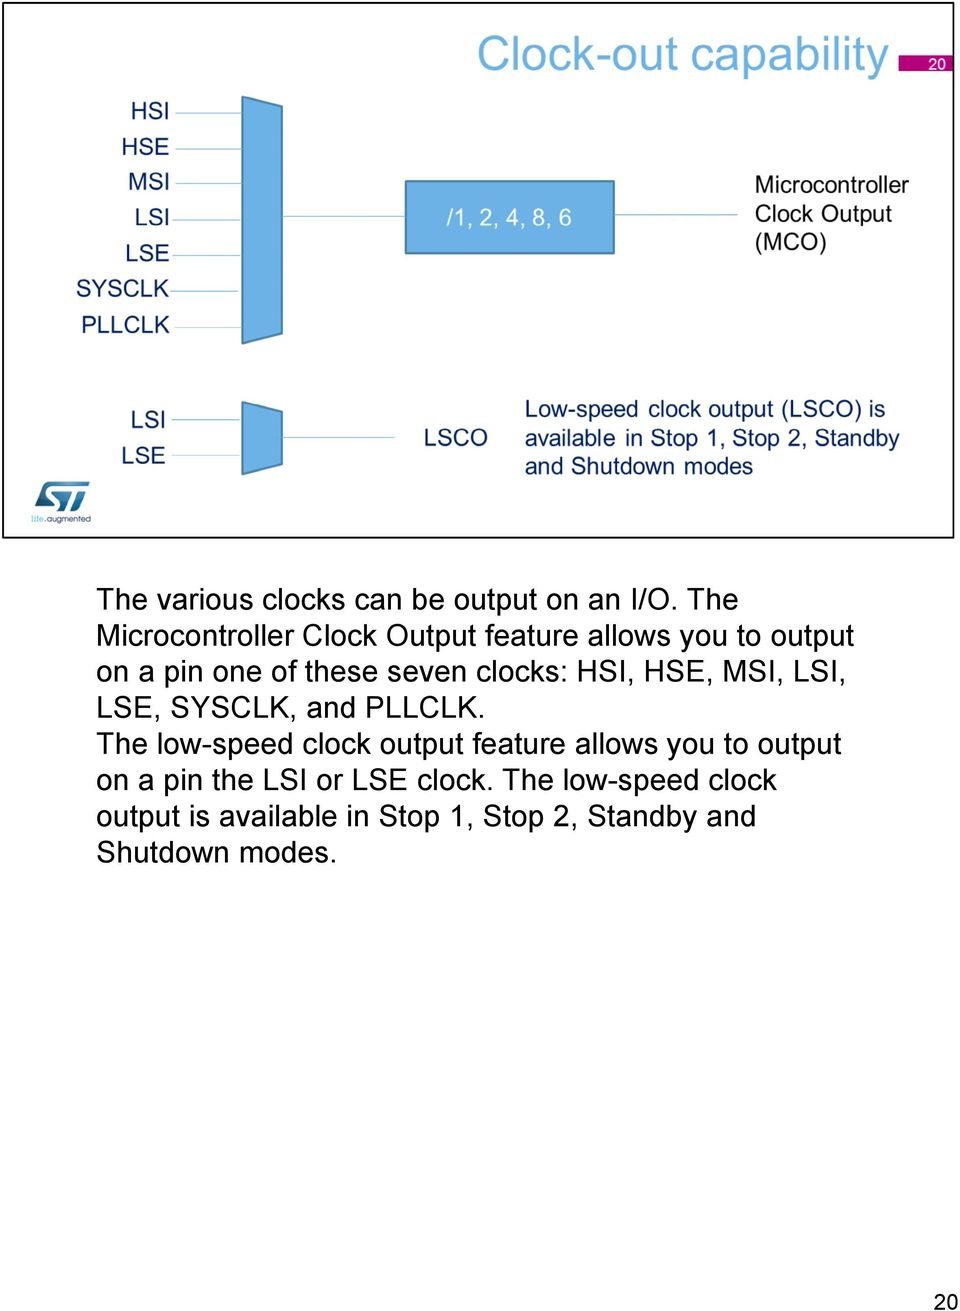 clocks: HSI, HSE, MSI, LSI, LSE, SYSCLK, and PLLCLK.